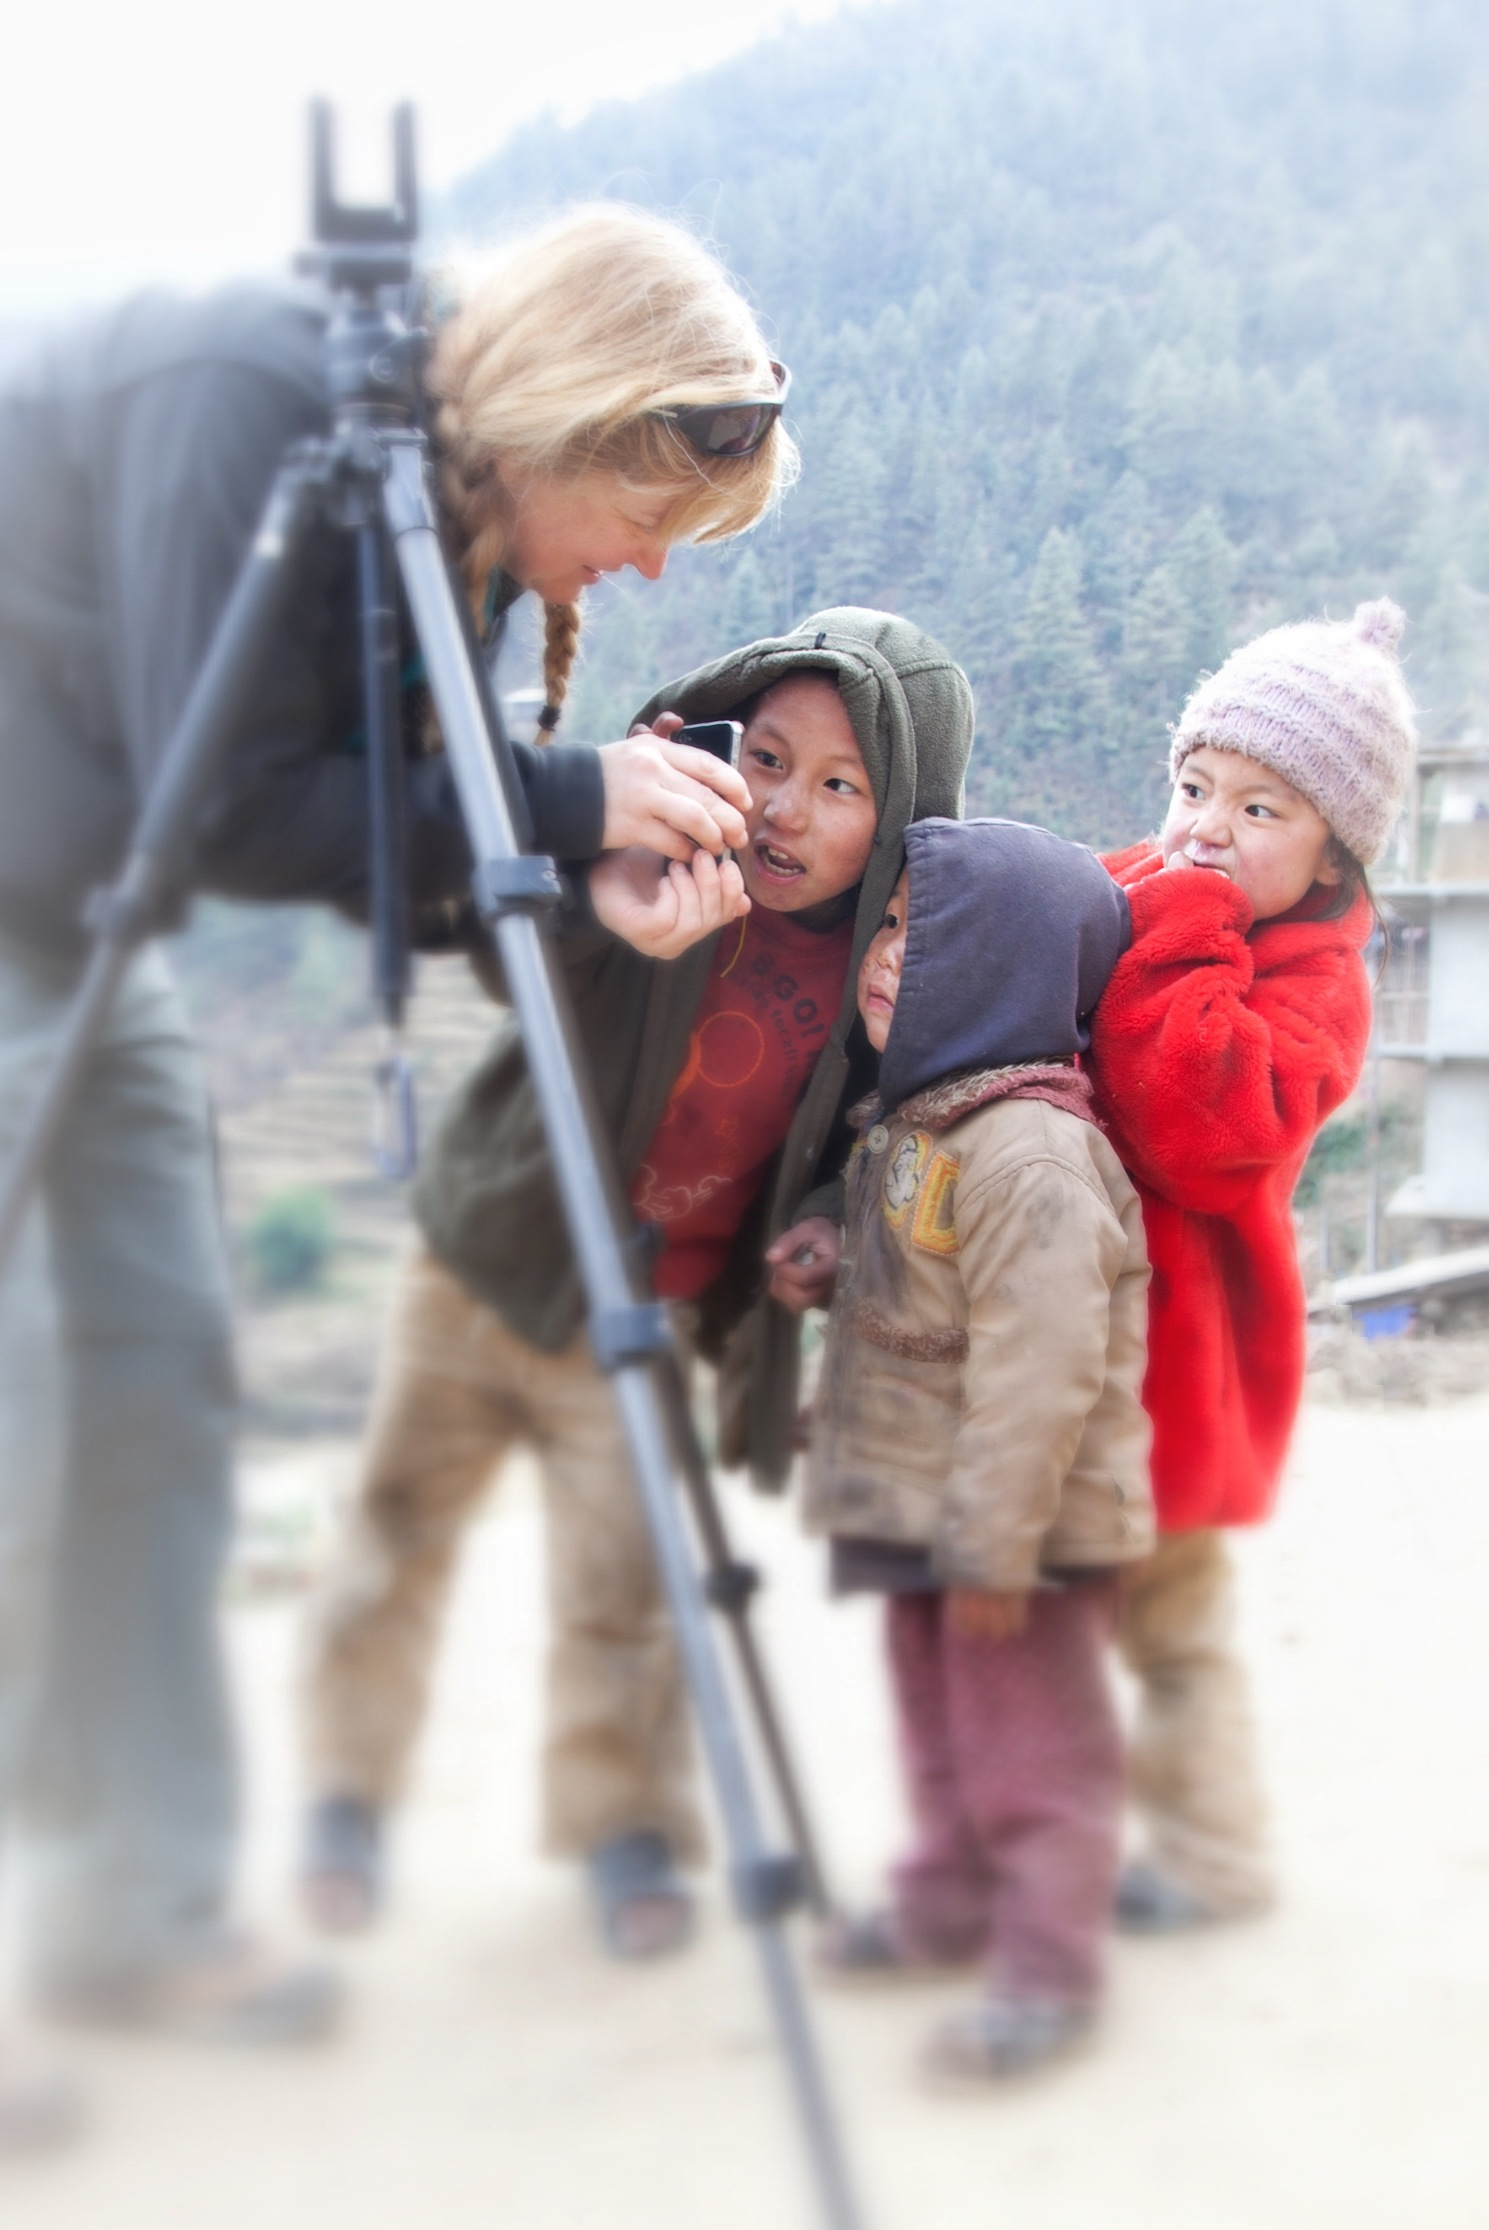 Teri Lou sharing a photo on the iPhone with chilren in Nepal